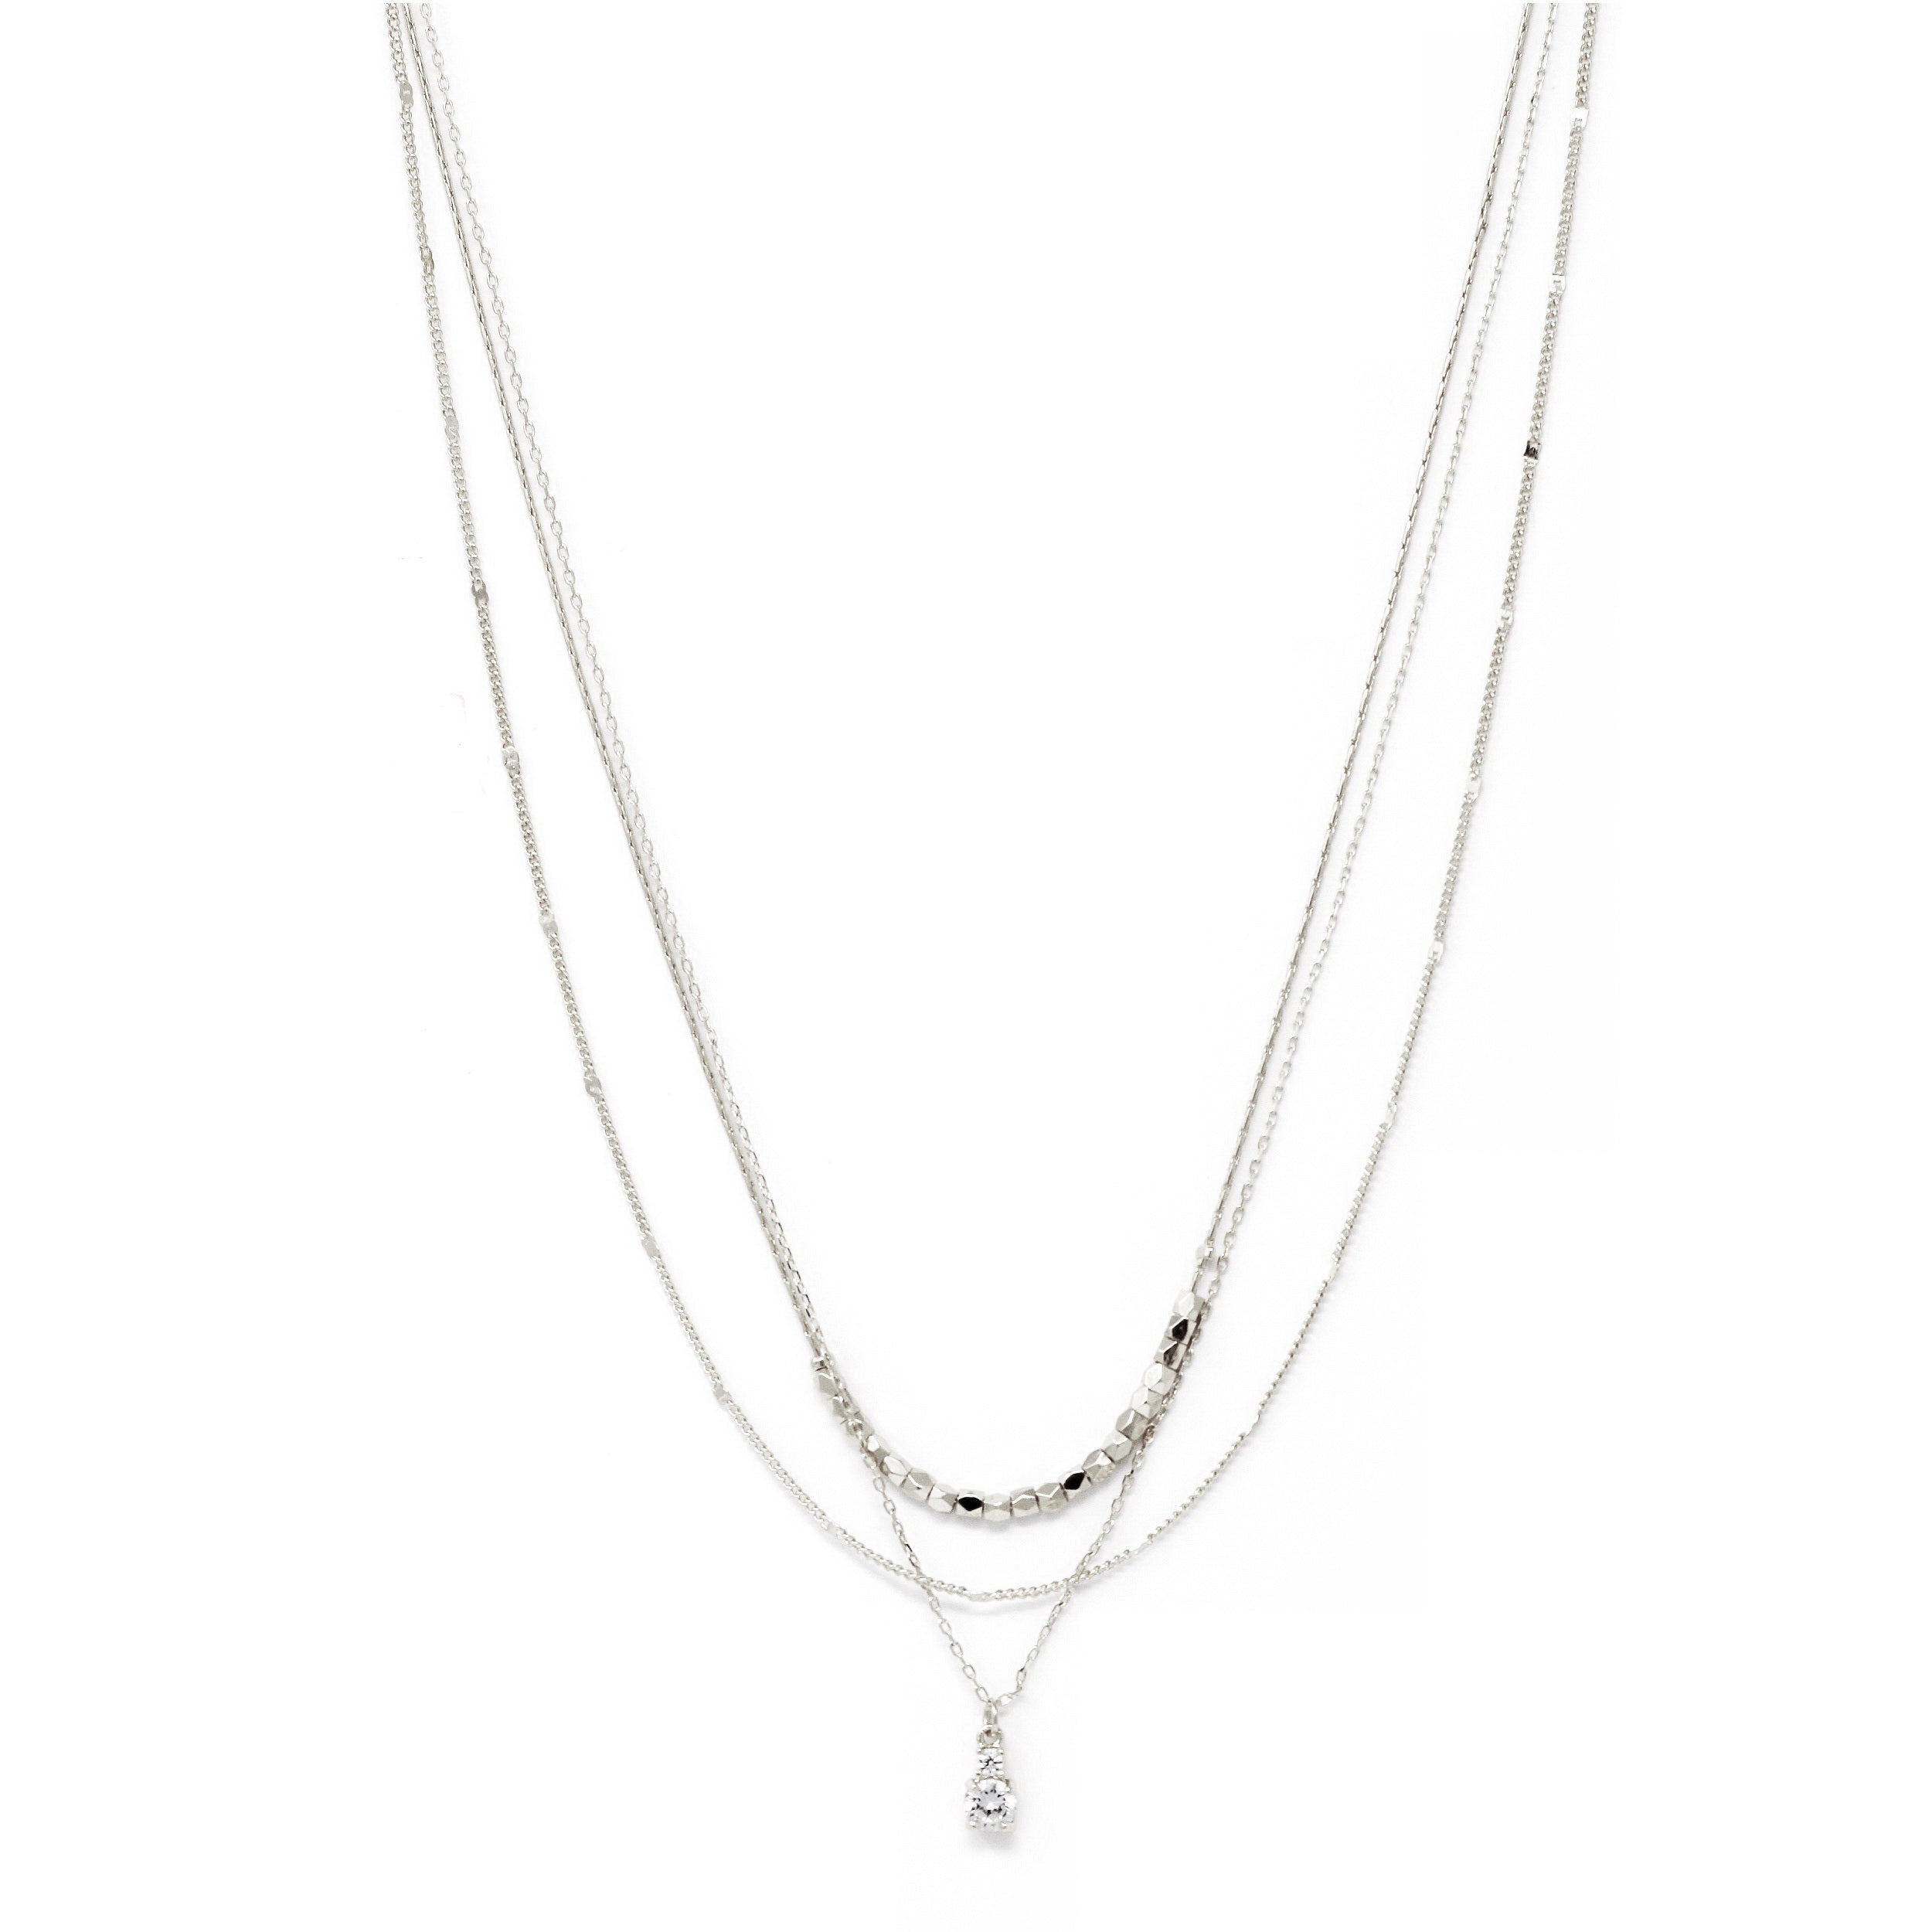 Premium Cubic Zirconia Metal Bead Short Layered Necklace